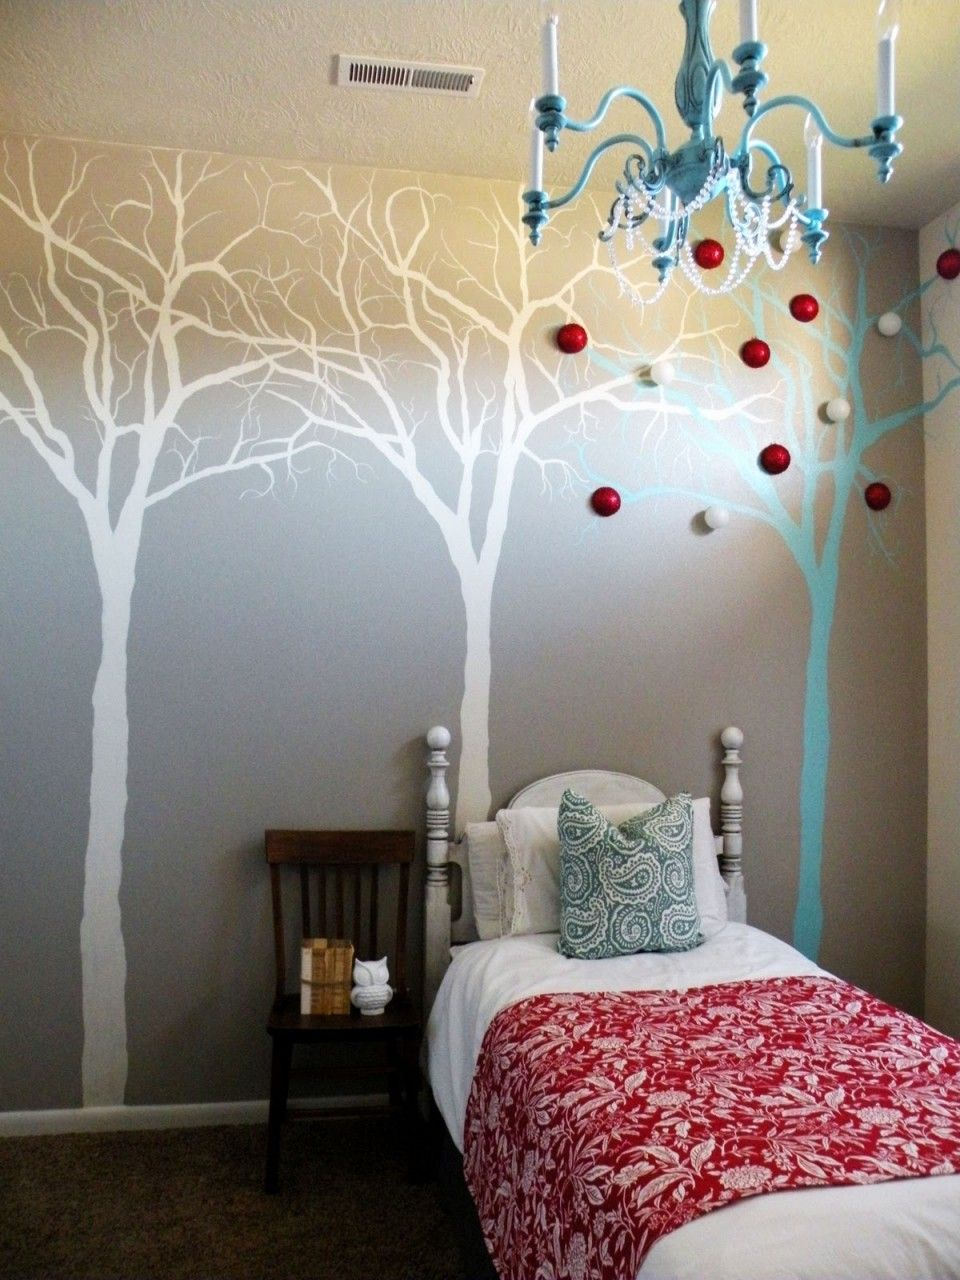 Tree wall mural ideas in small bedroom with blue throw pillow tree wall mural ideas in small bedroom with blue throw pillow floral quilt and white headboard amipublicfo Image collections